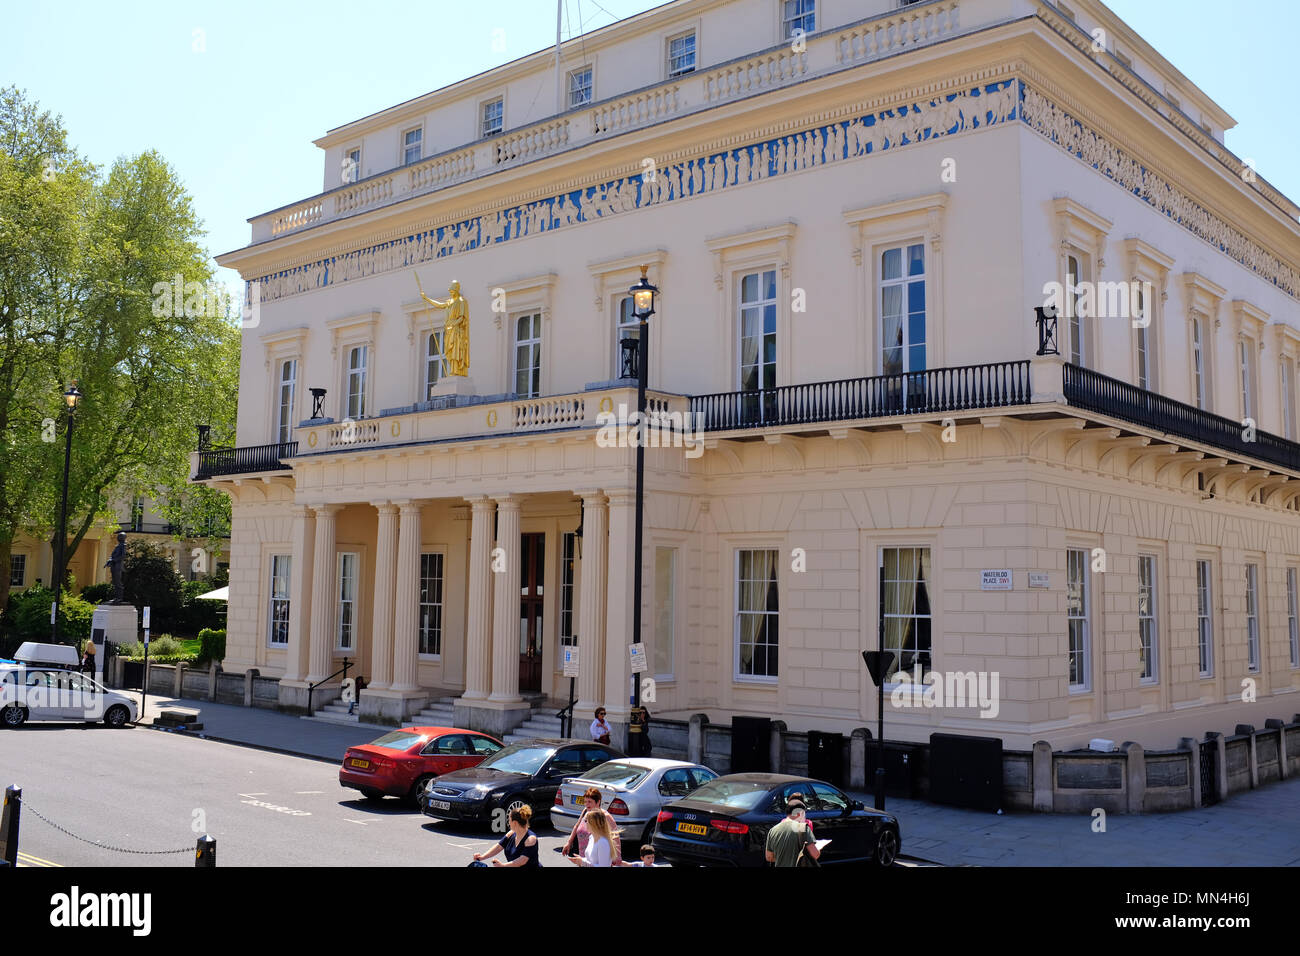 The Athenaeum is a private members' club in London, founded in 1824. It was designed by Decimus Burton in the Neoclassical style with a Doric portico, - Stock Image